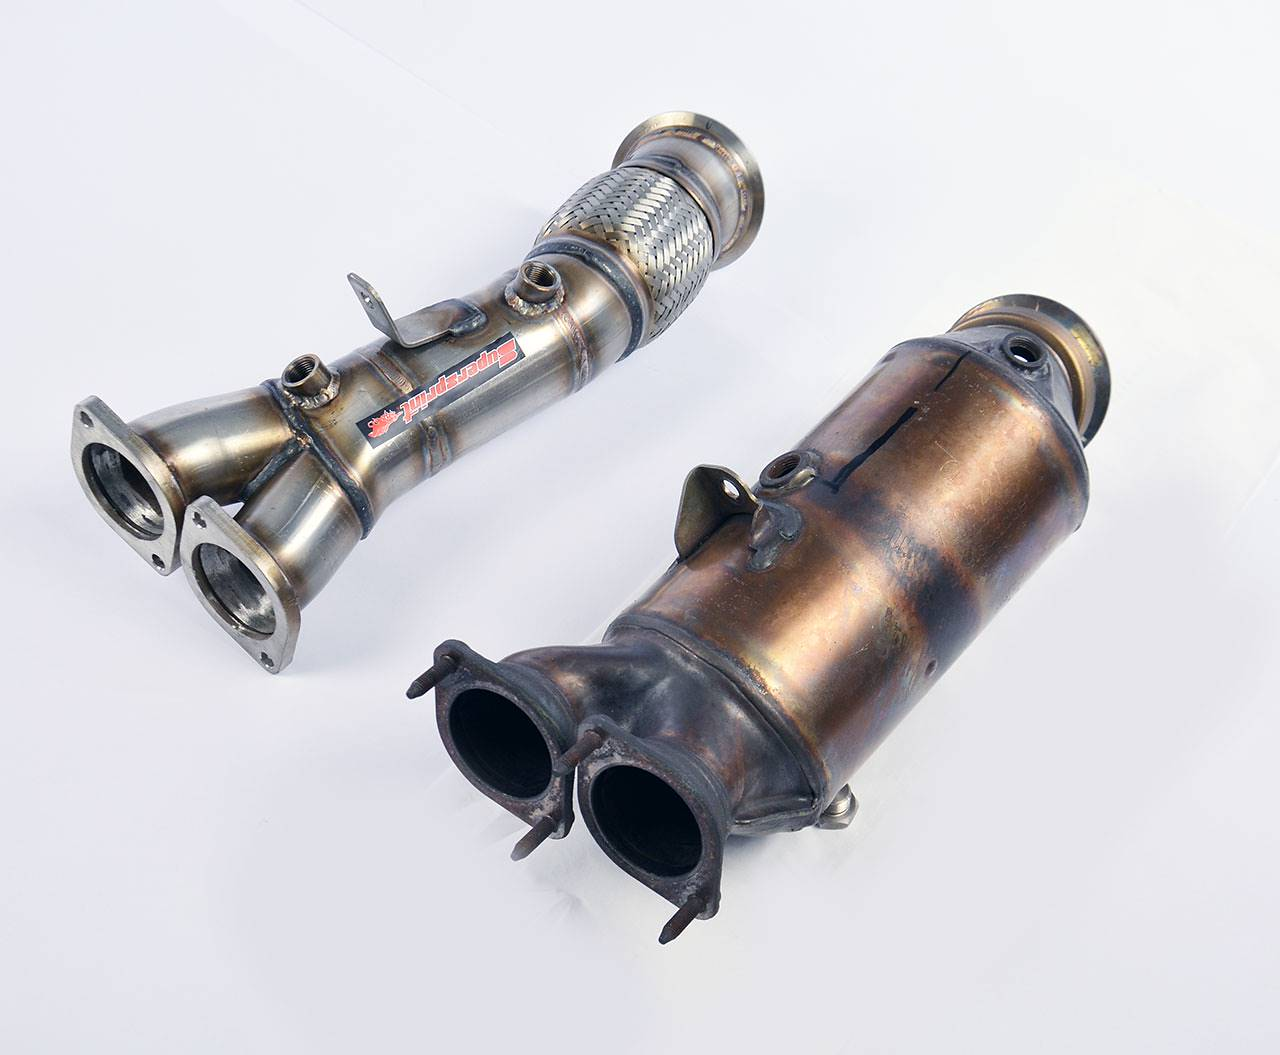 turbo downpipe kit replace catalytic converter for n55. Black Bedroom Furniture Sets. Home Design Ideas